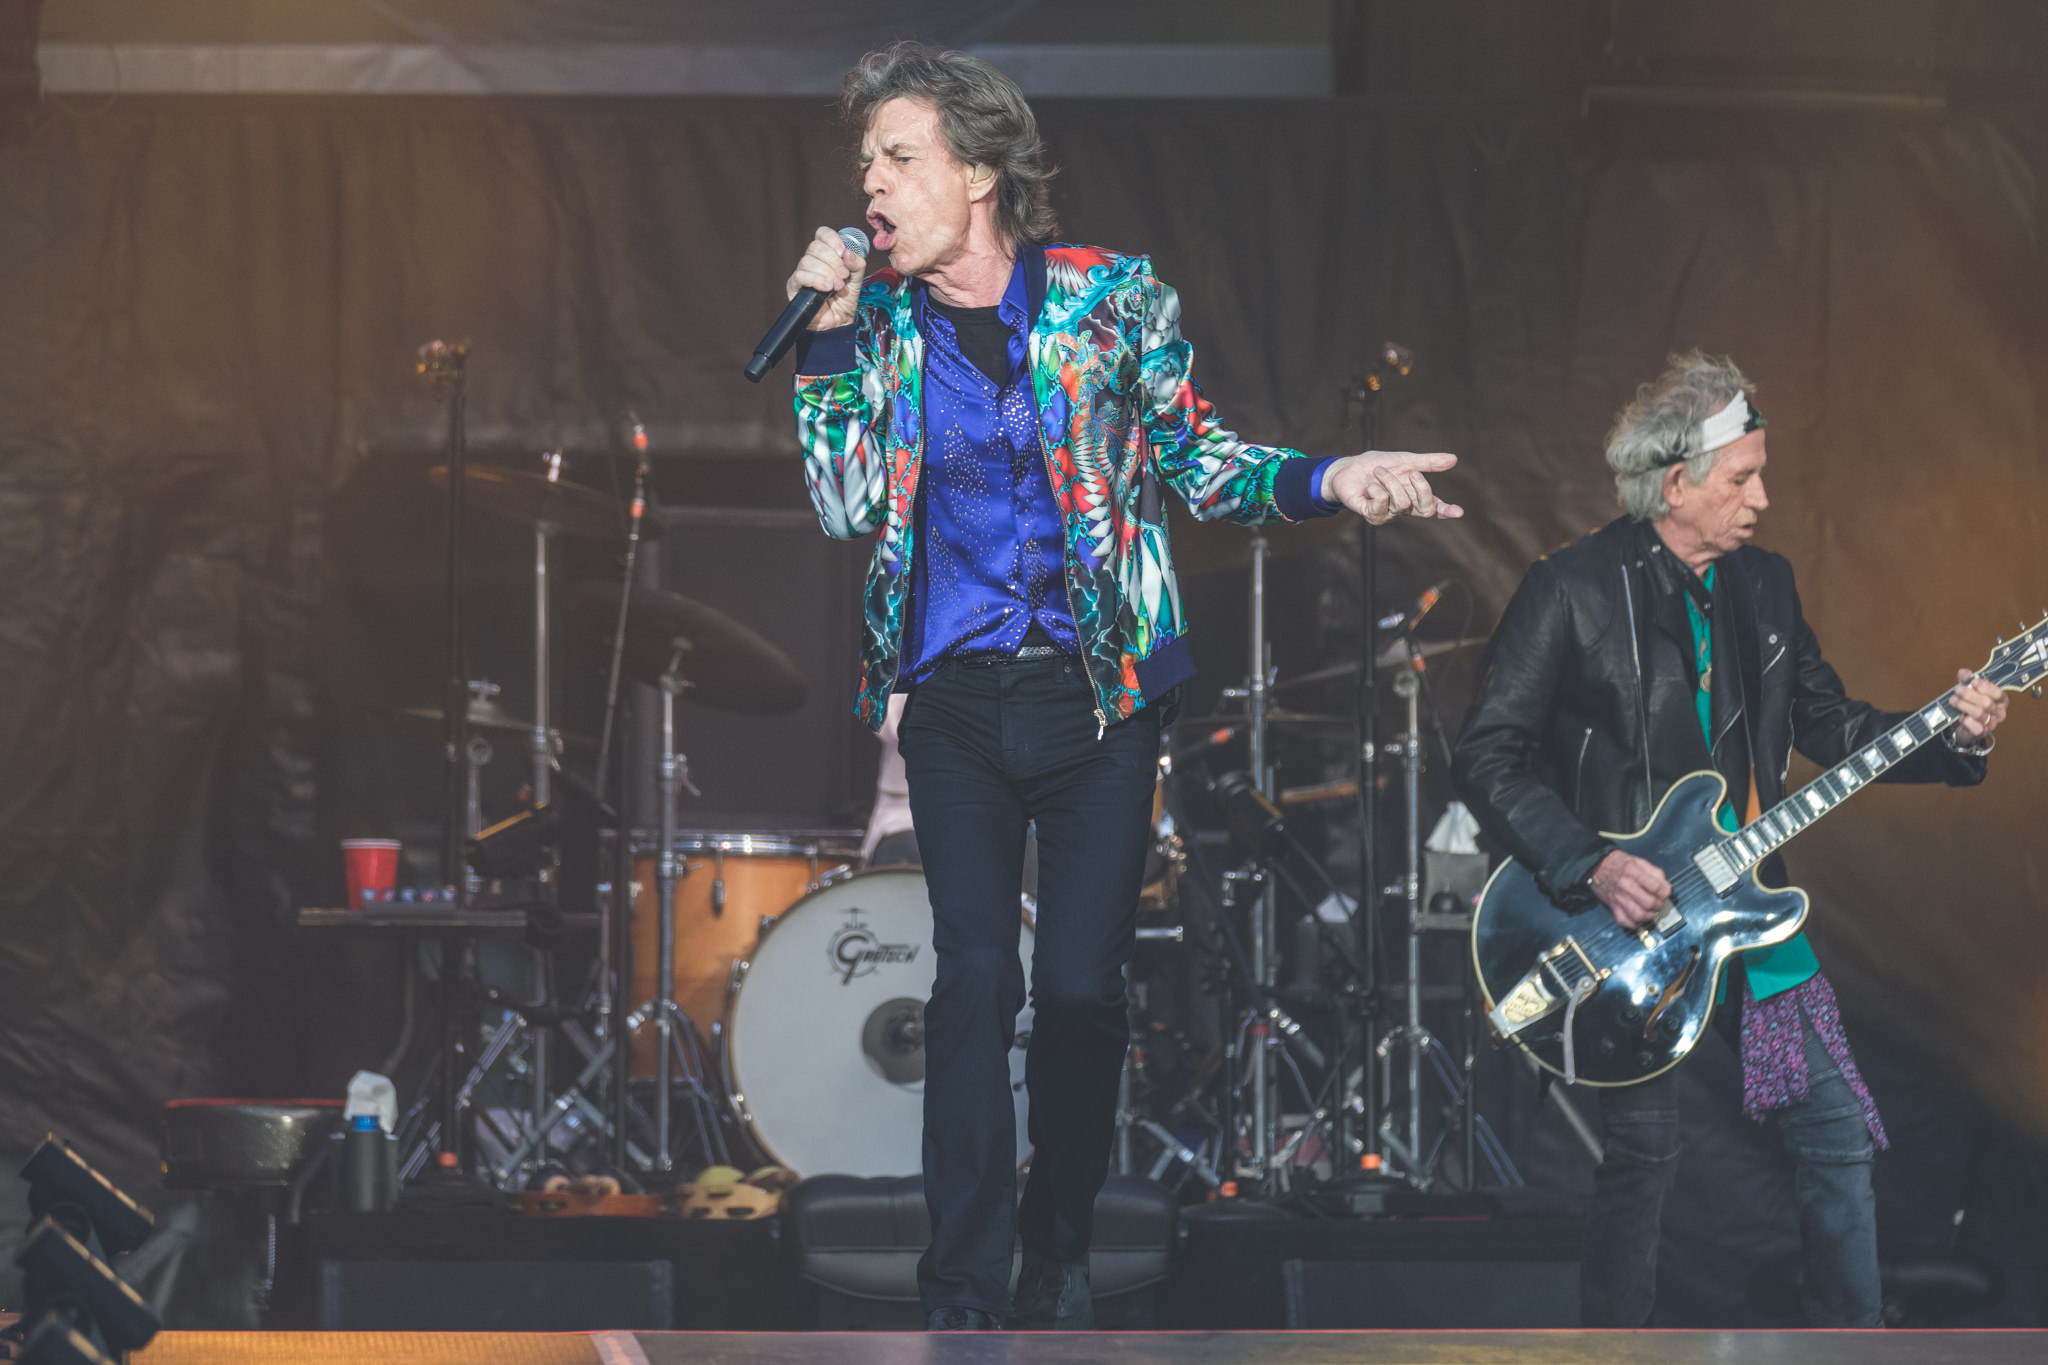 The Rolling Stones perform live on stage at Twickenham Stadium on June 19, 2018 in London, England.